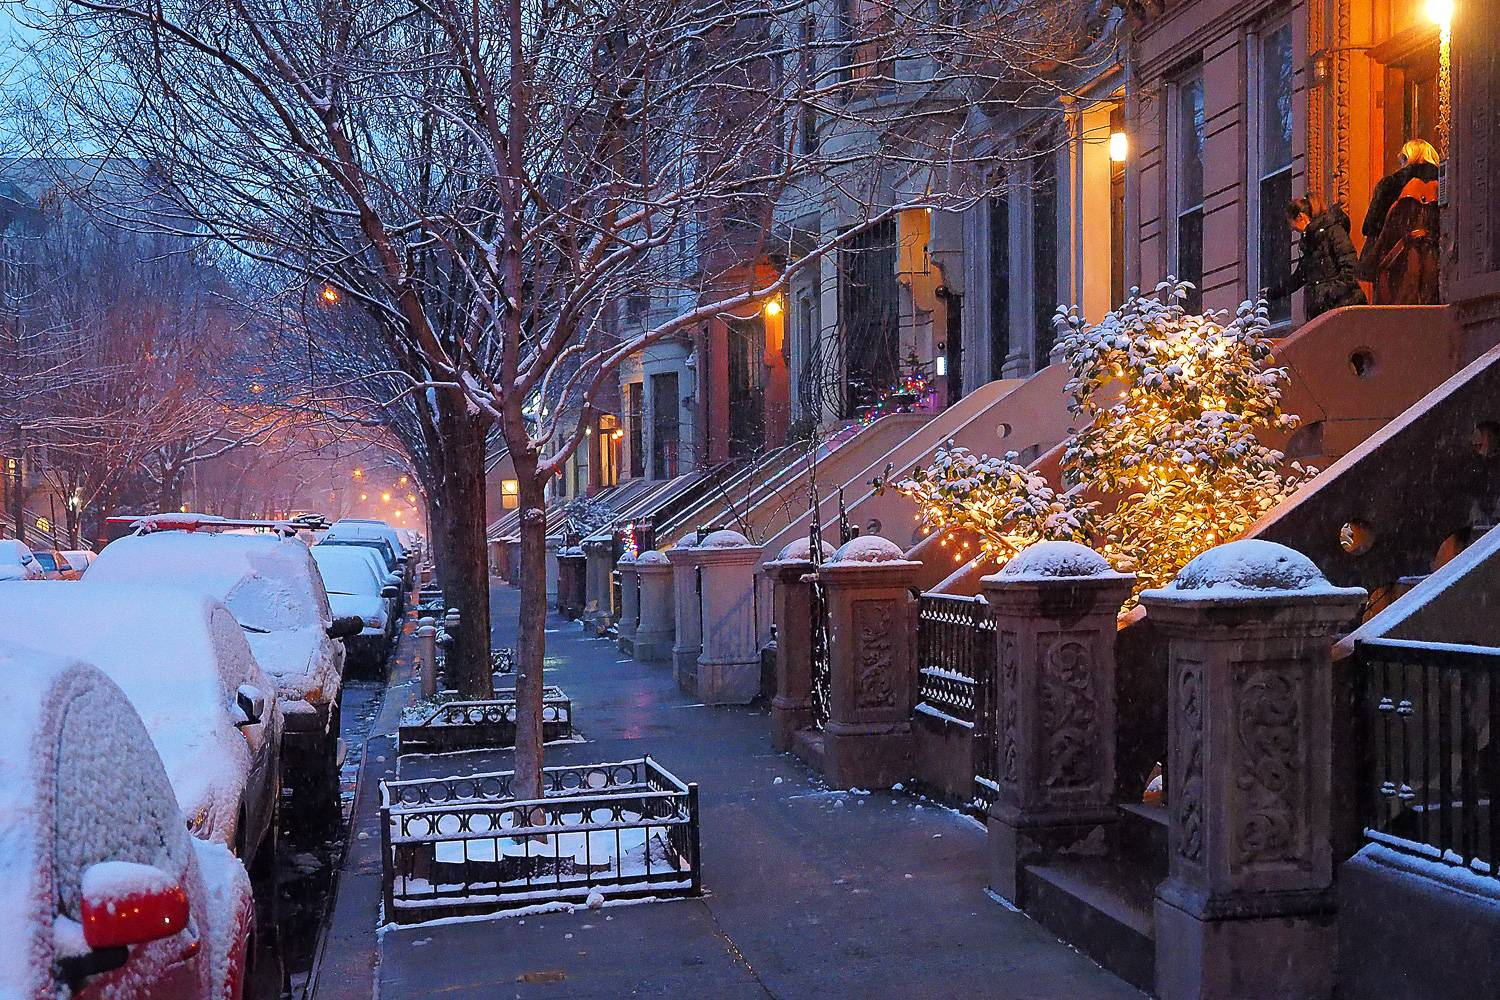 Winter Guide: Every Delightful Thing to Do in New York City